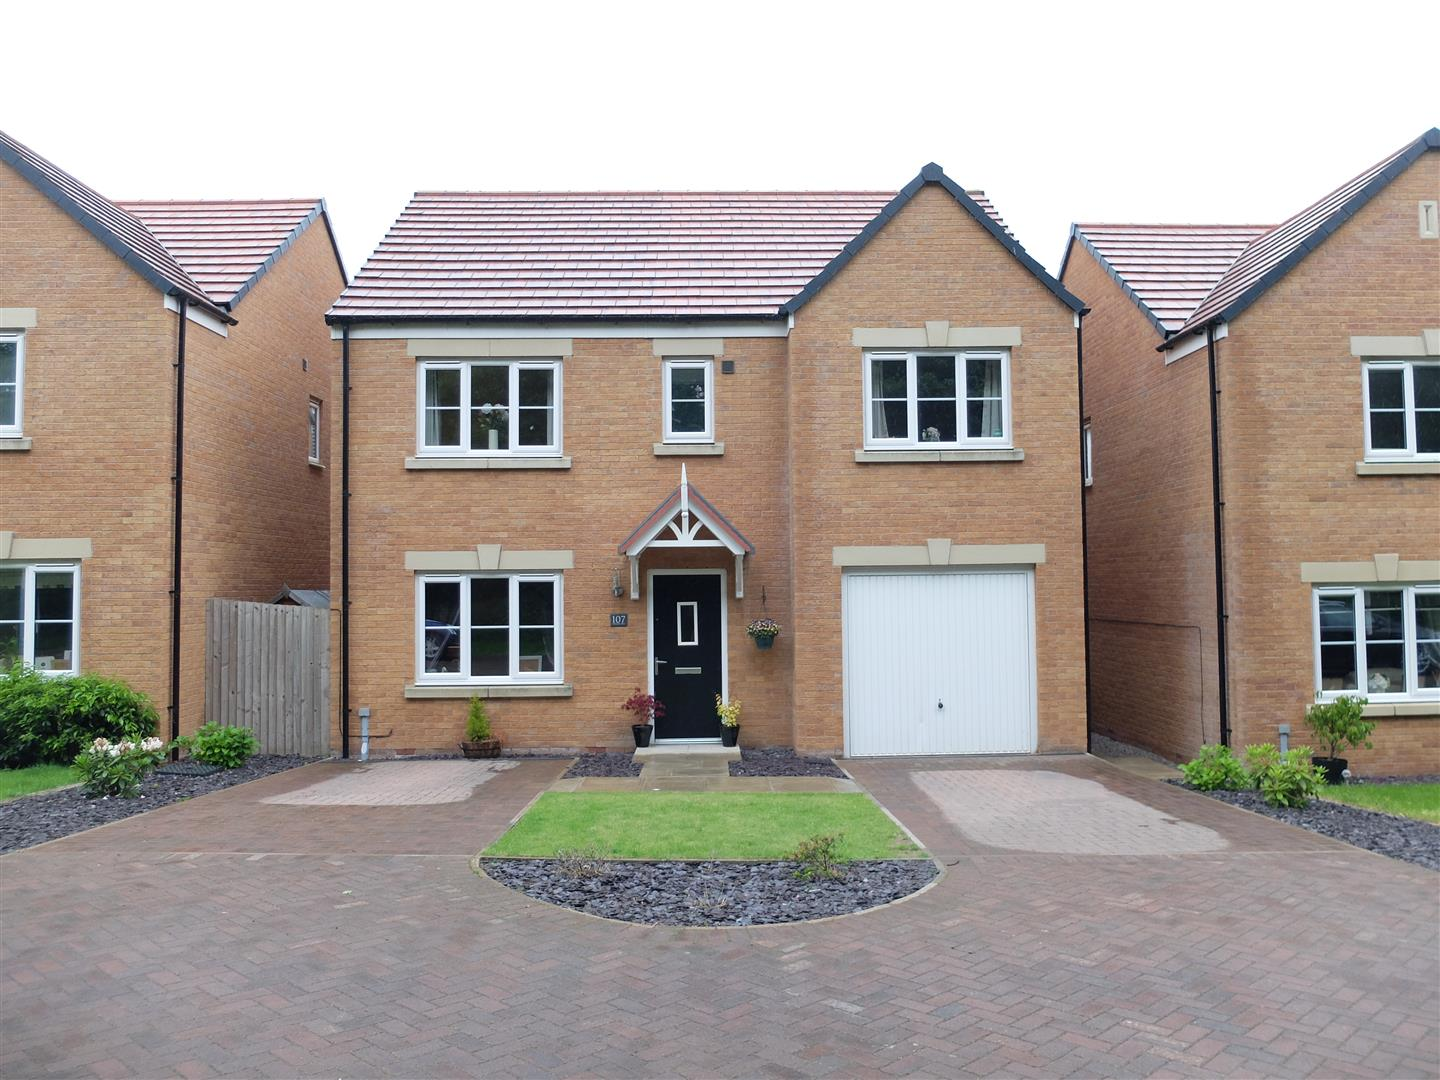 107 Glaramara Drive Carlisle 5 Bedrooms House - Detached For Sale